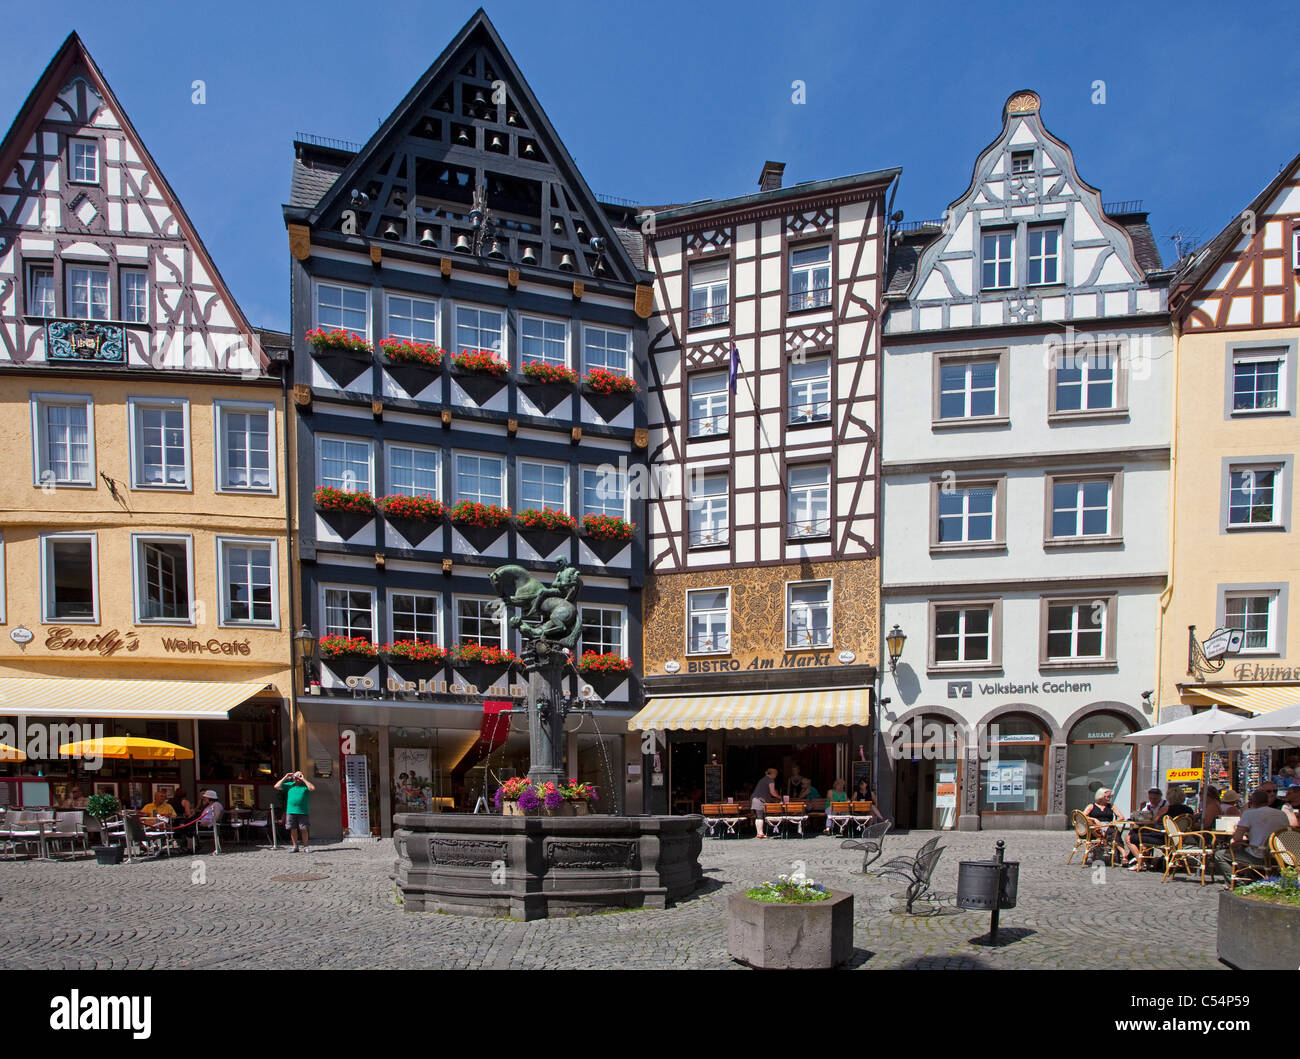 Cochem, Marktplatz mit historischem Brunnen, historischer Stadtkern, Market place, fountain, well on the market - Stock Image